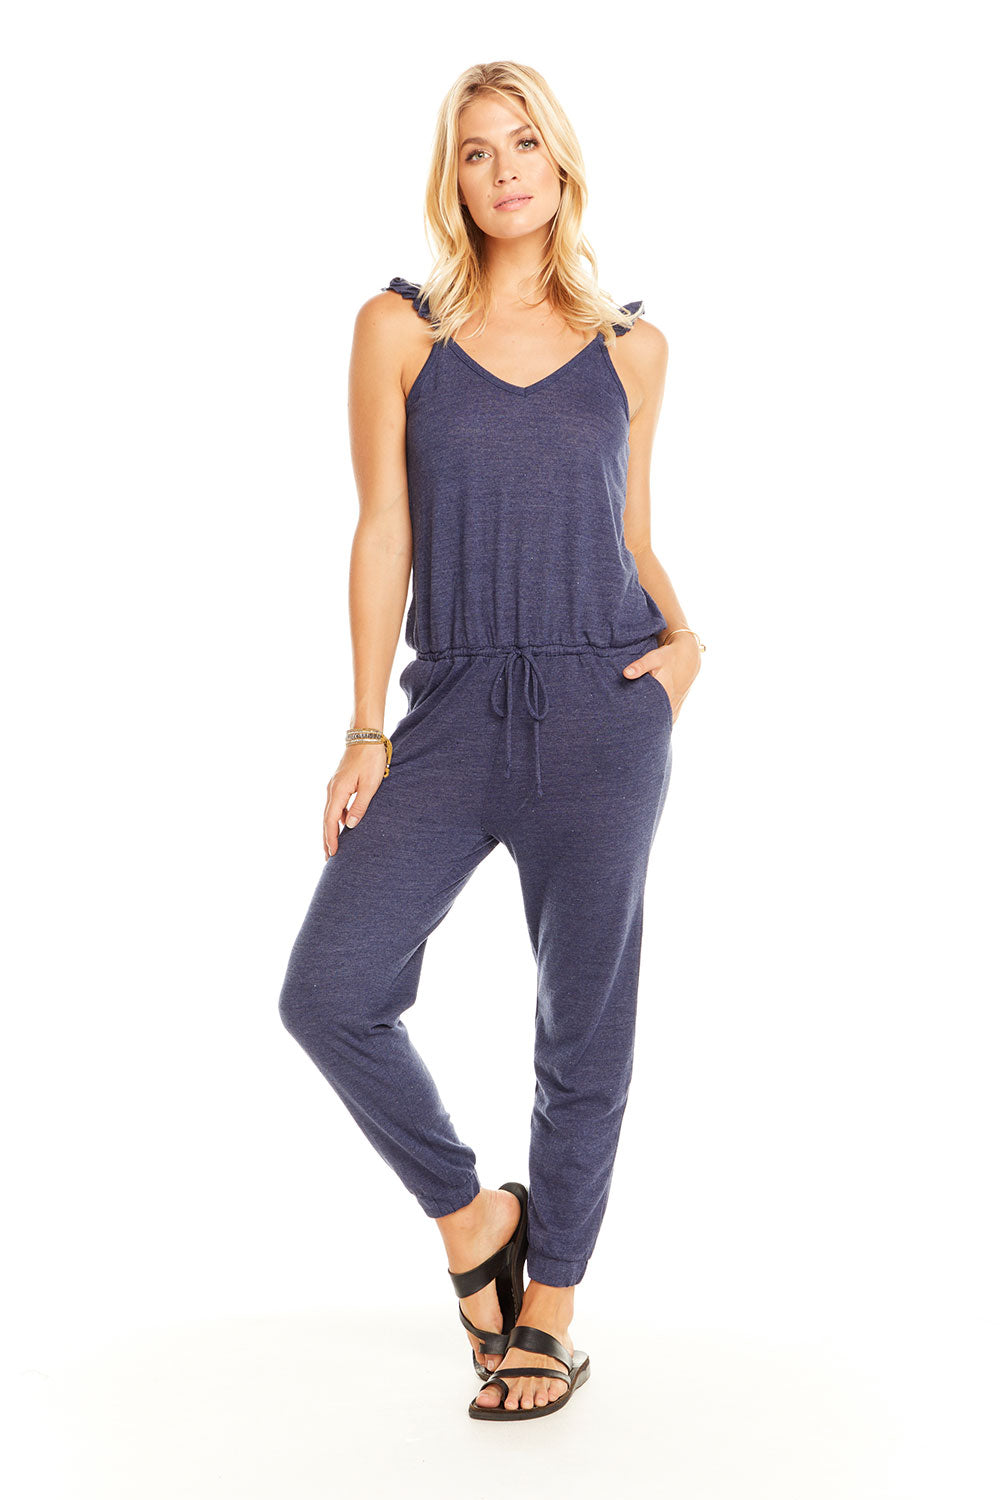 Triblend Flutter V Neck Jumpsuit, WOMENS, chaserbrand.com,chaser clothing,chaser apparel,chaser los angeles